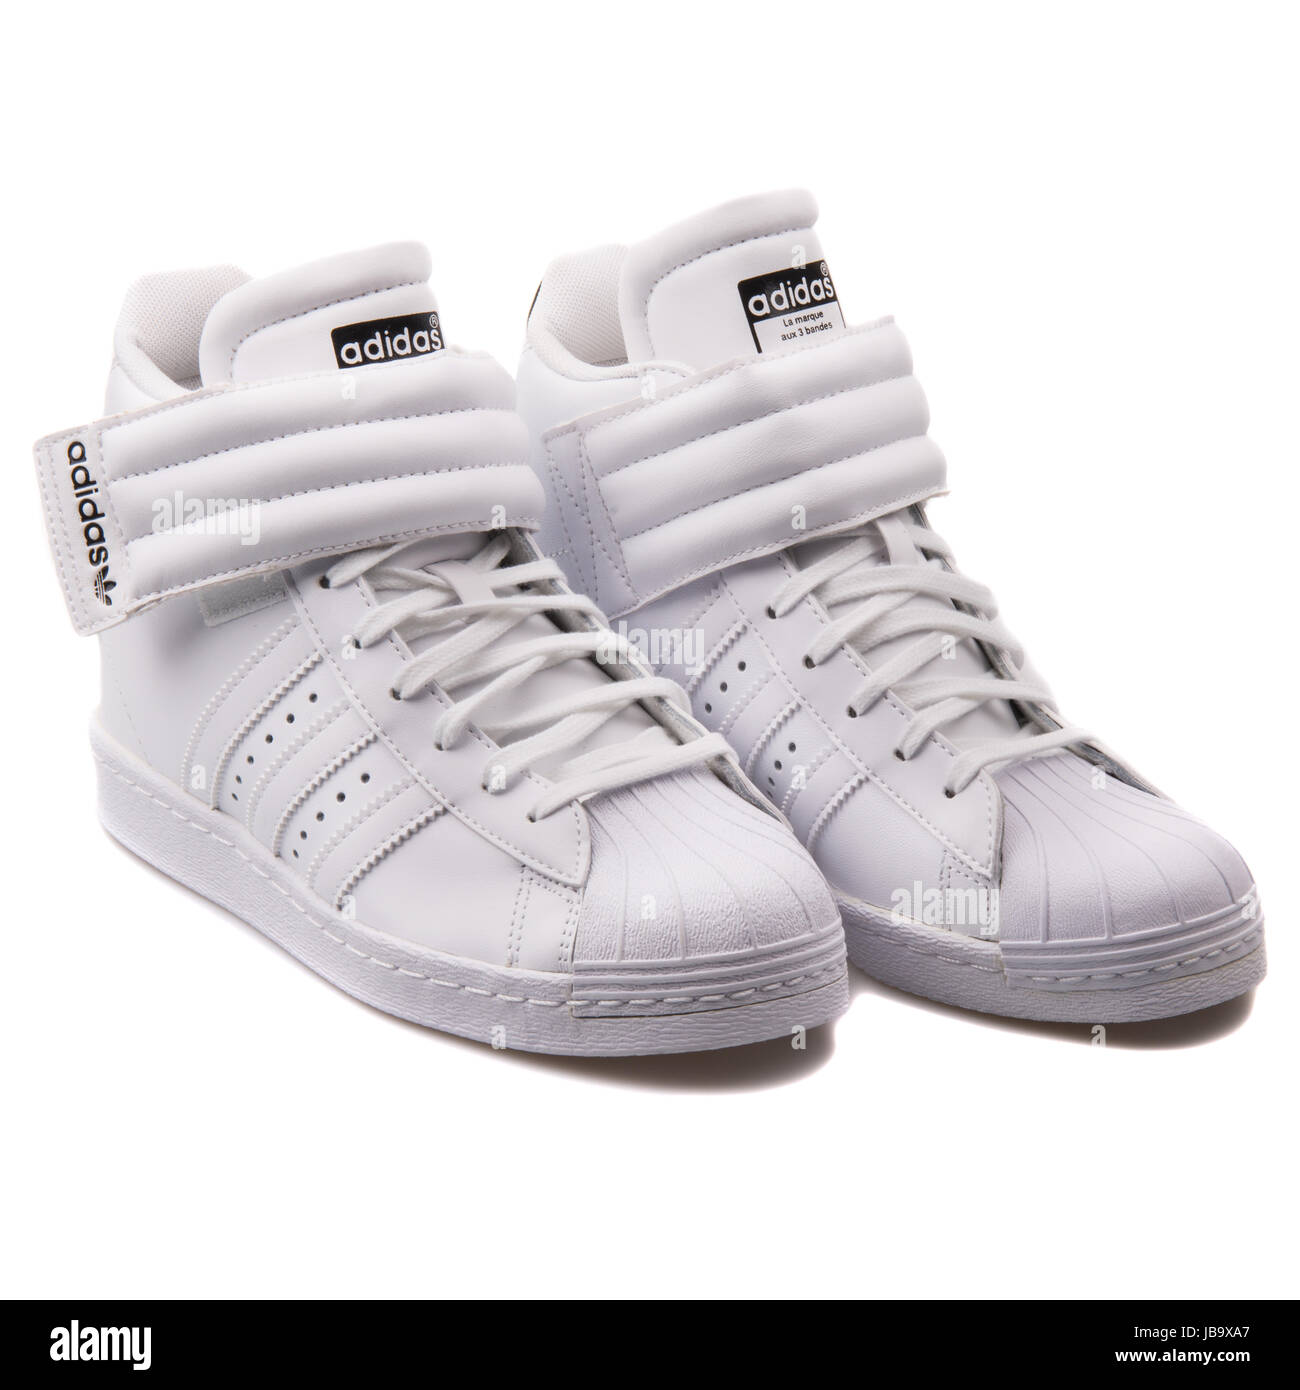 official photos bda12 ad0d2 Adidas Superstar UP Strap W White Women's Shoes - S81351 ...